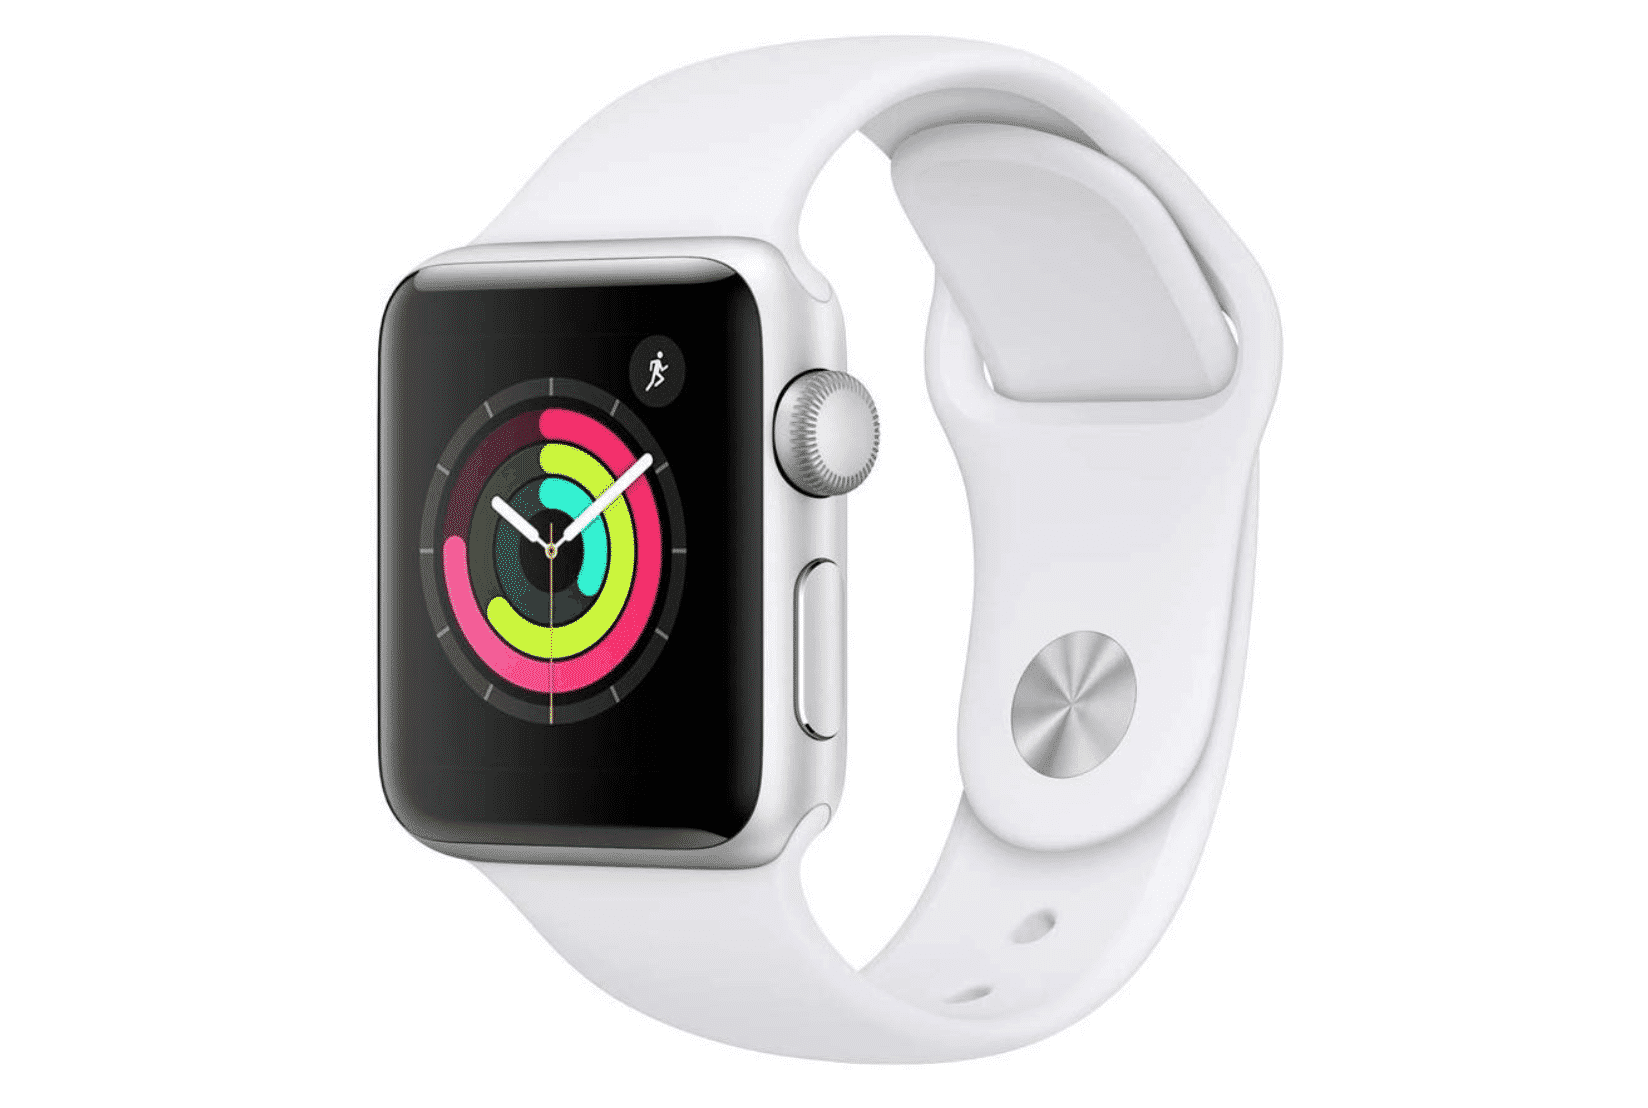 Apple Watch Series 3 Gets Another Price Markdown